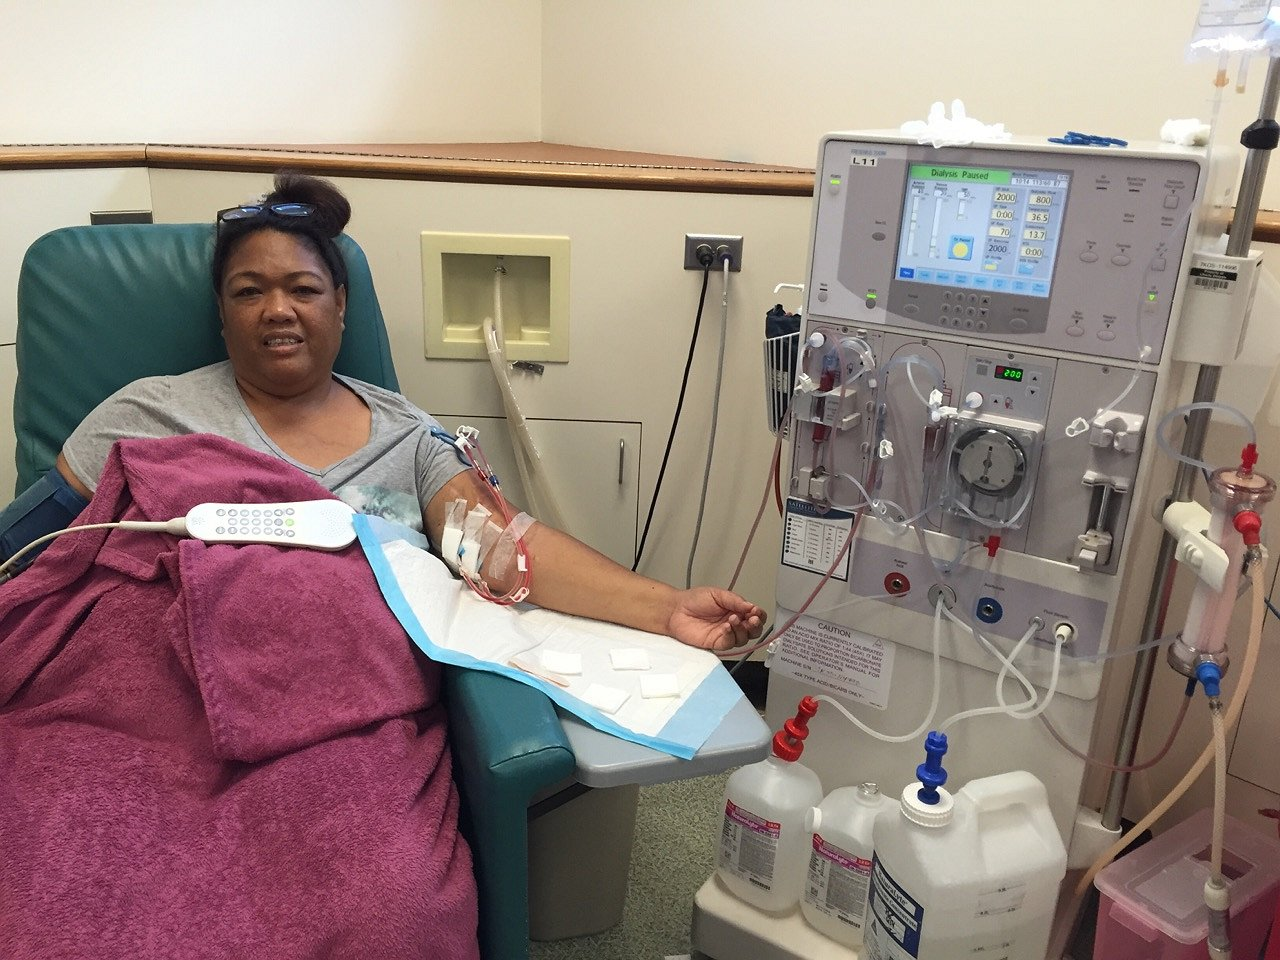 During dialysis treatments